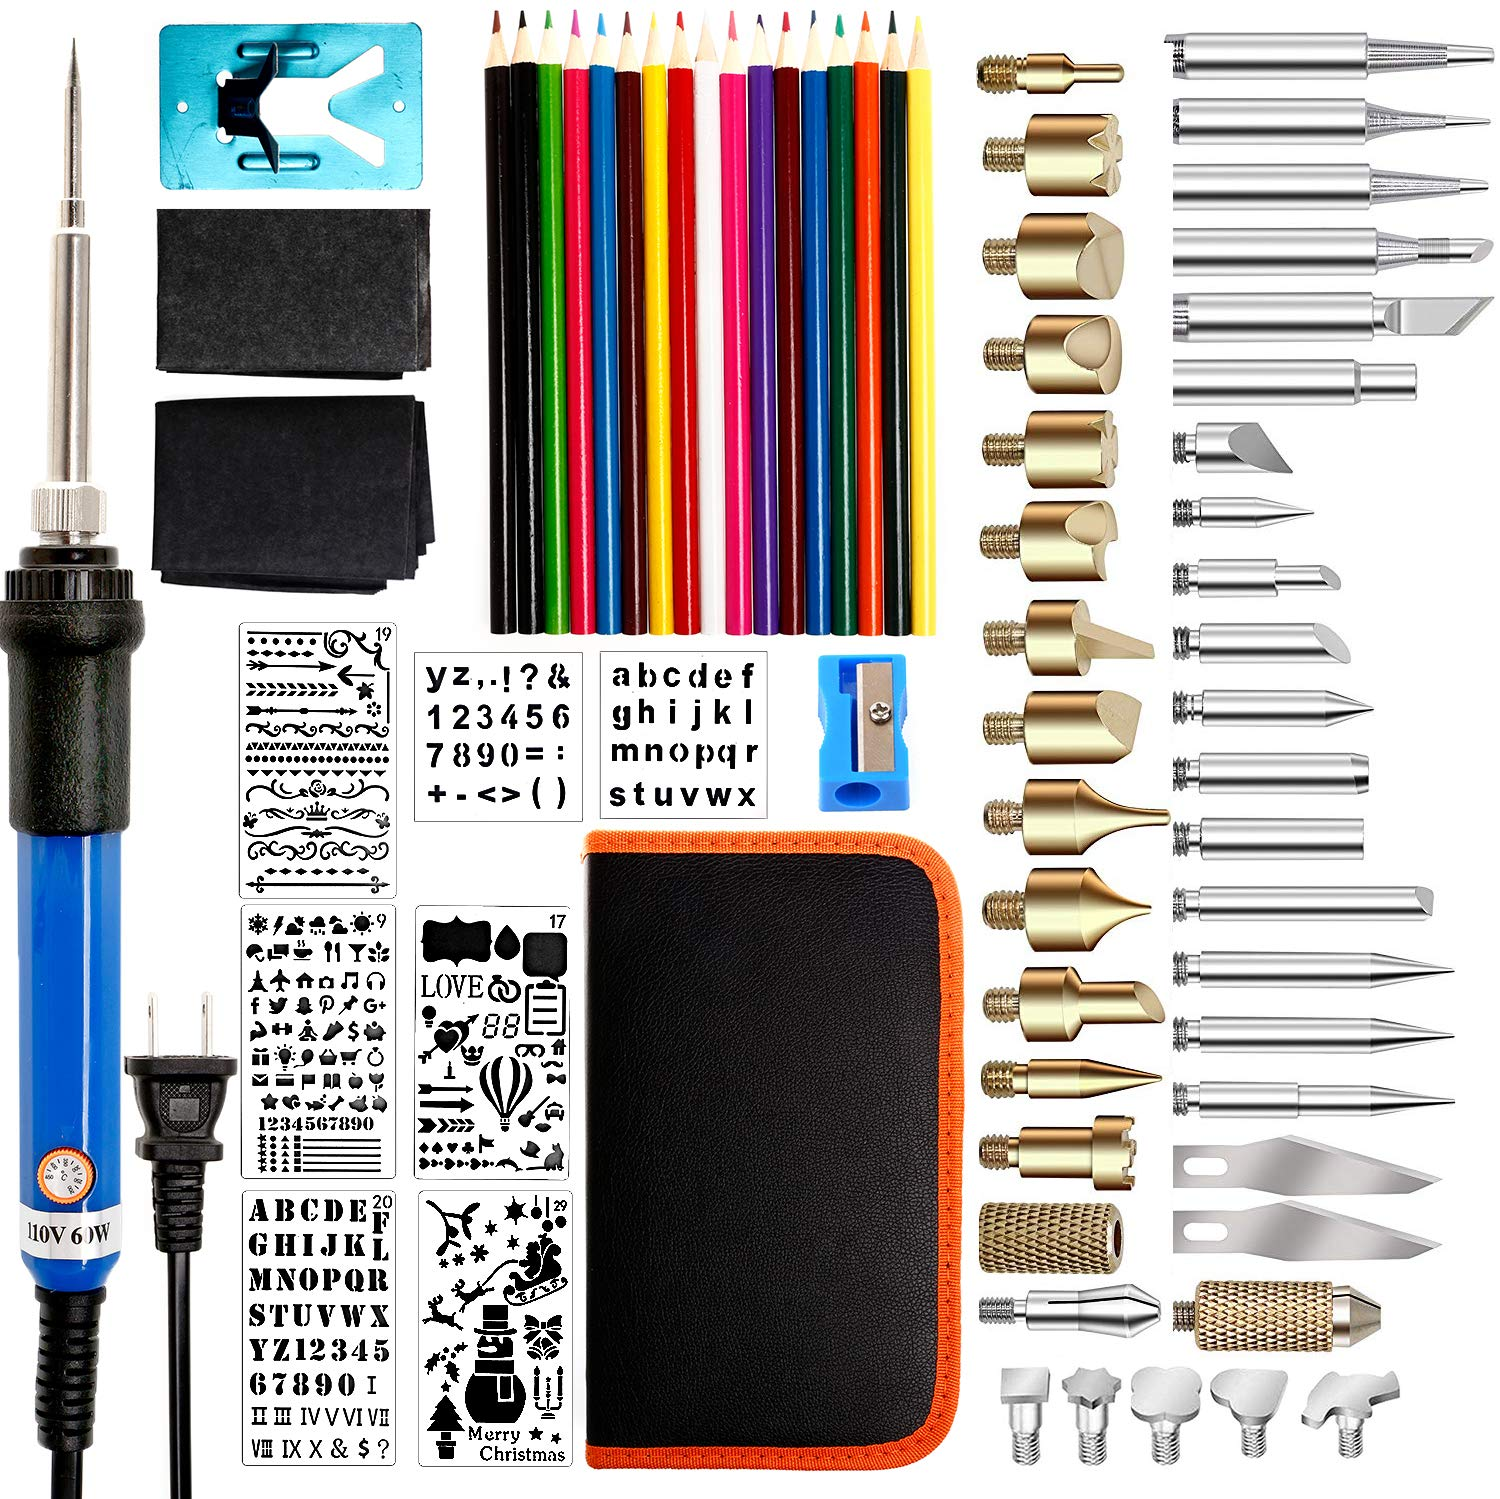 72PCS Wood Burning Kit, Pyrography Set with Adjustable Temperature Pyrography Pen for Wood Burning/Carving/Embossing/Soldering - Soldering Tips + Stencil + Stand + Carrying Case